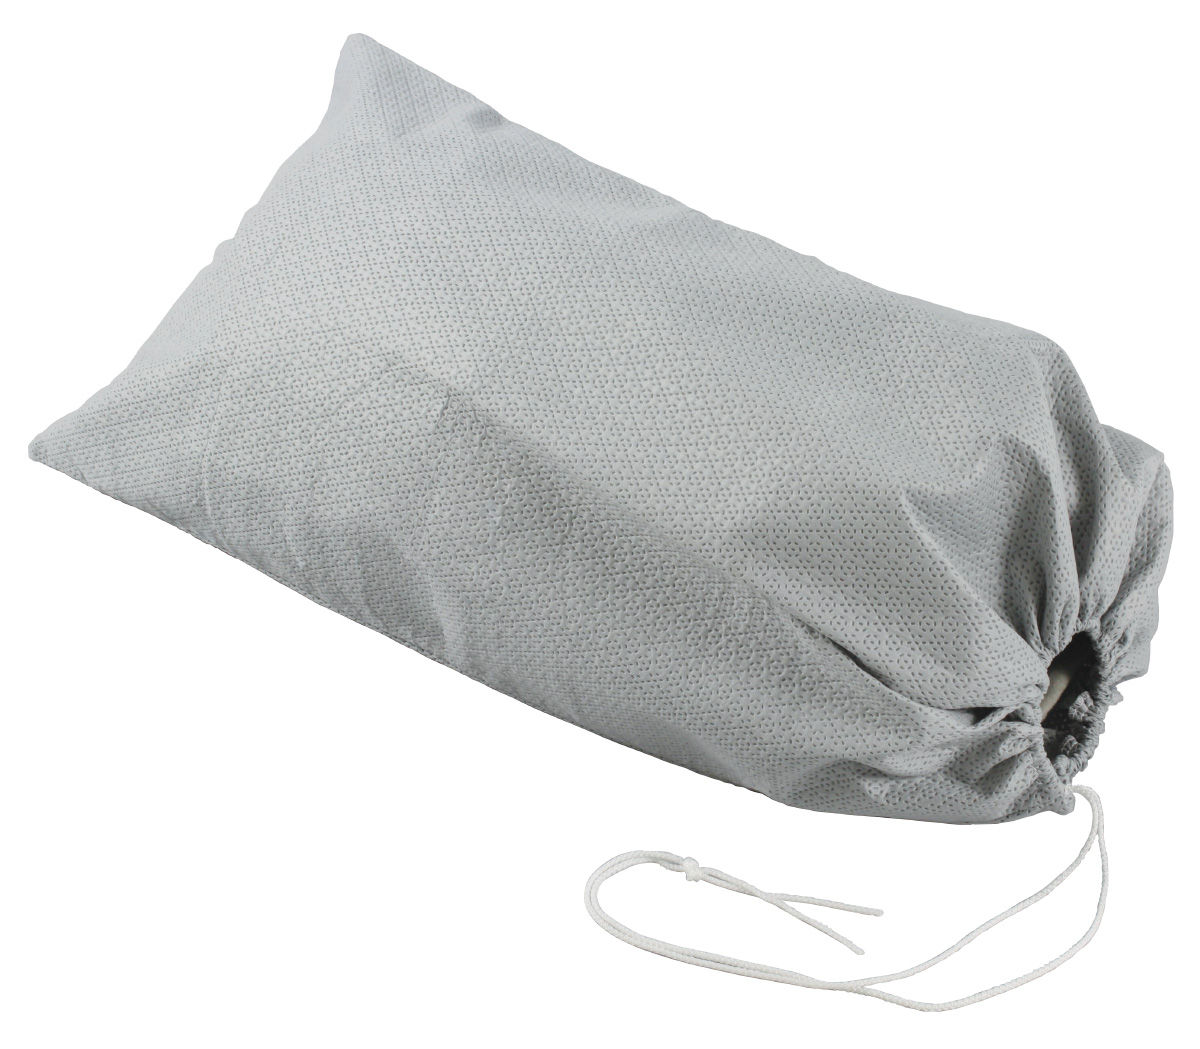 Car Cover Storage Bags : Restoparts car cover storage bag opgi